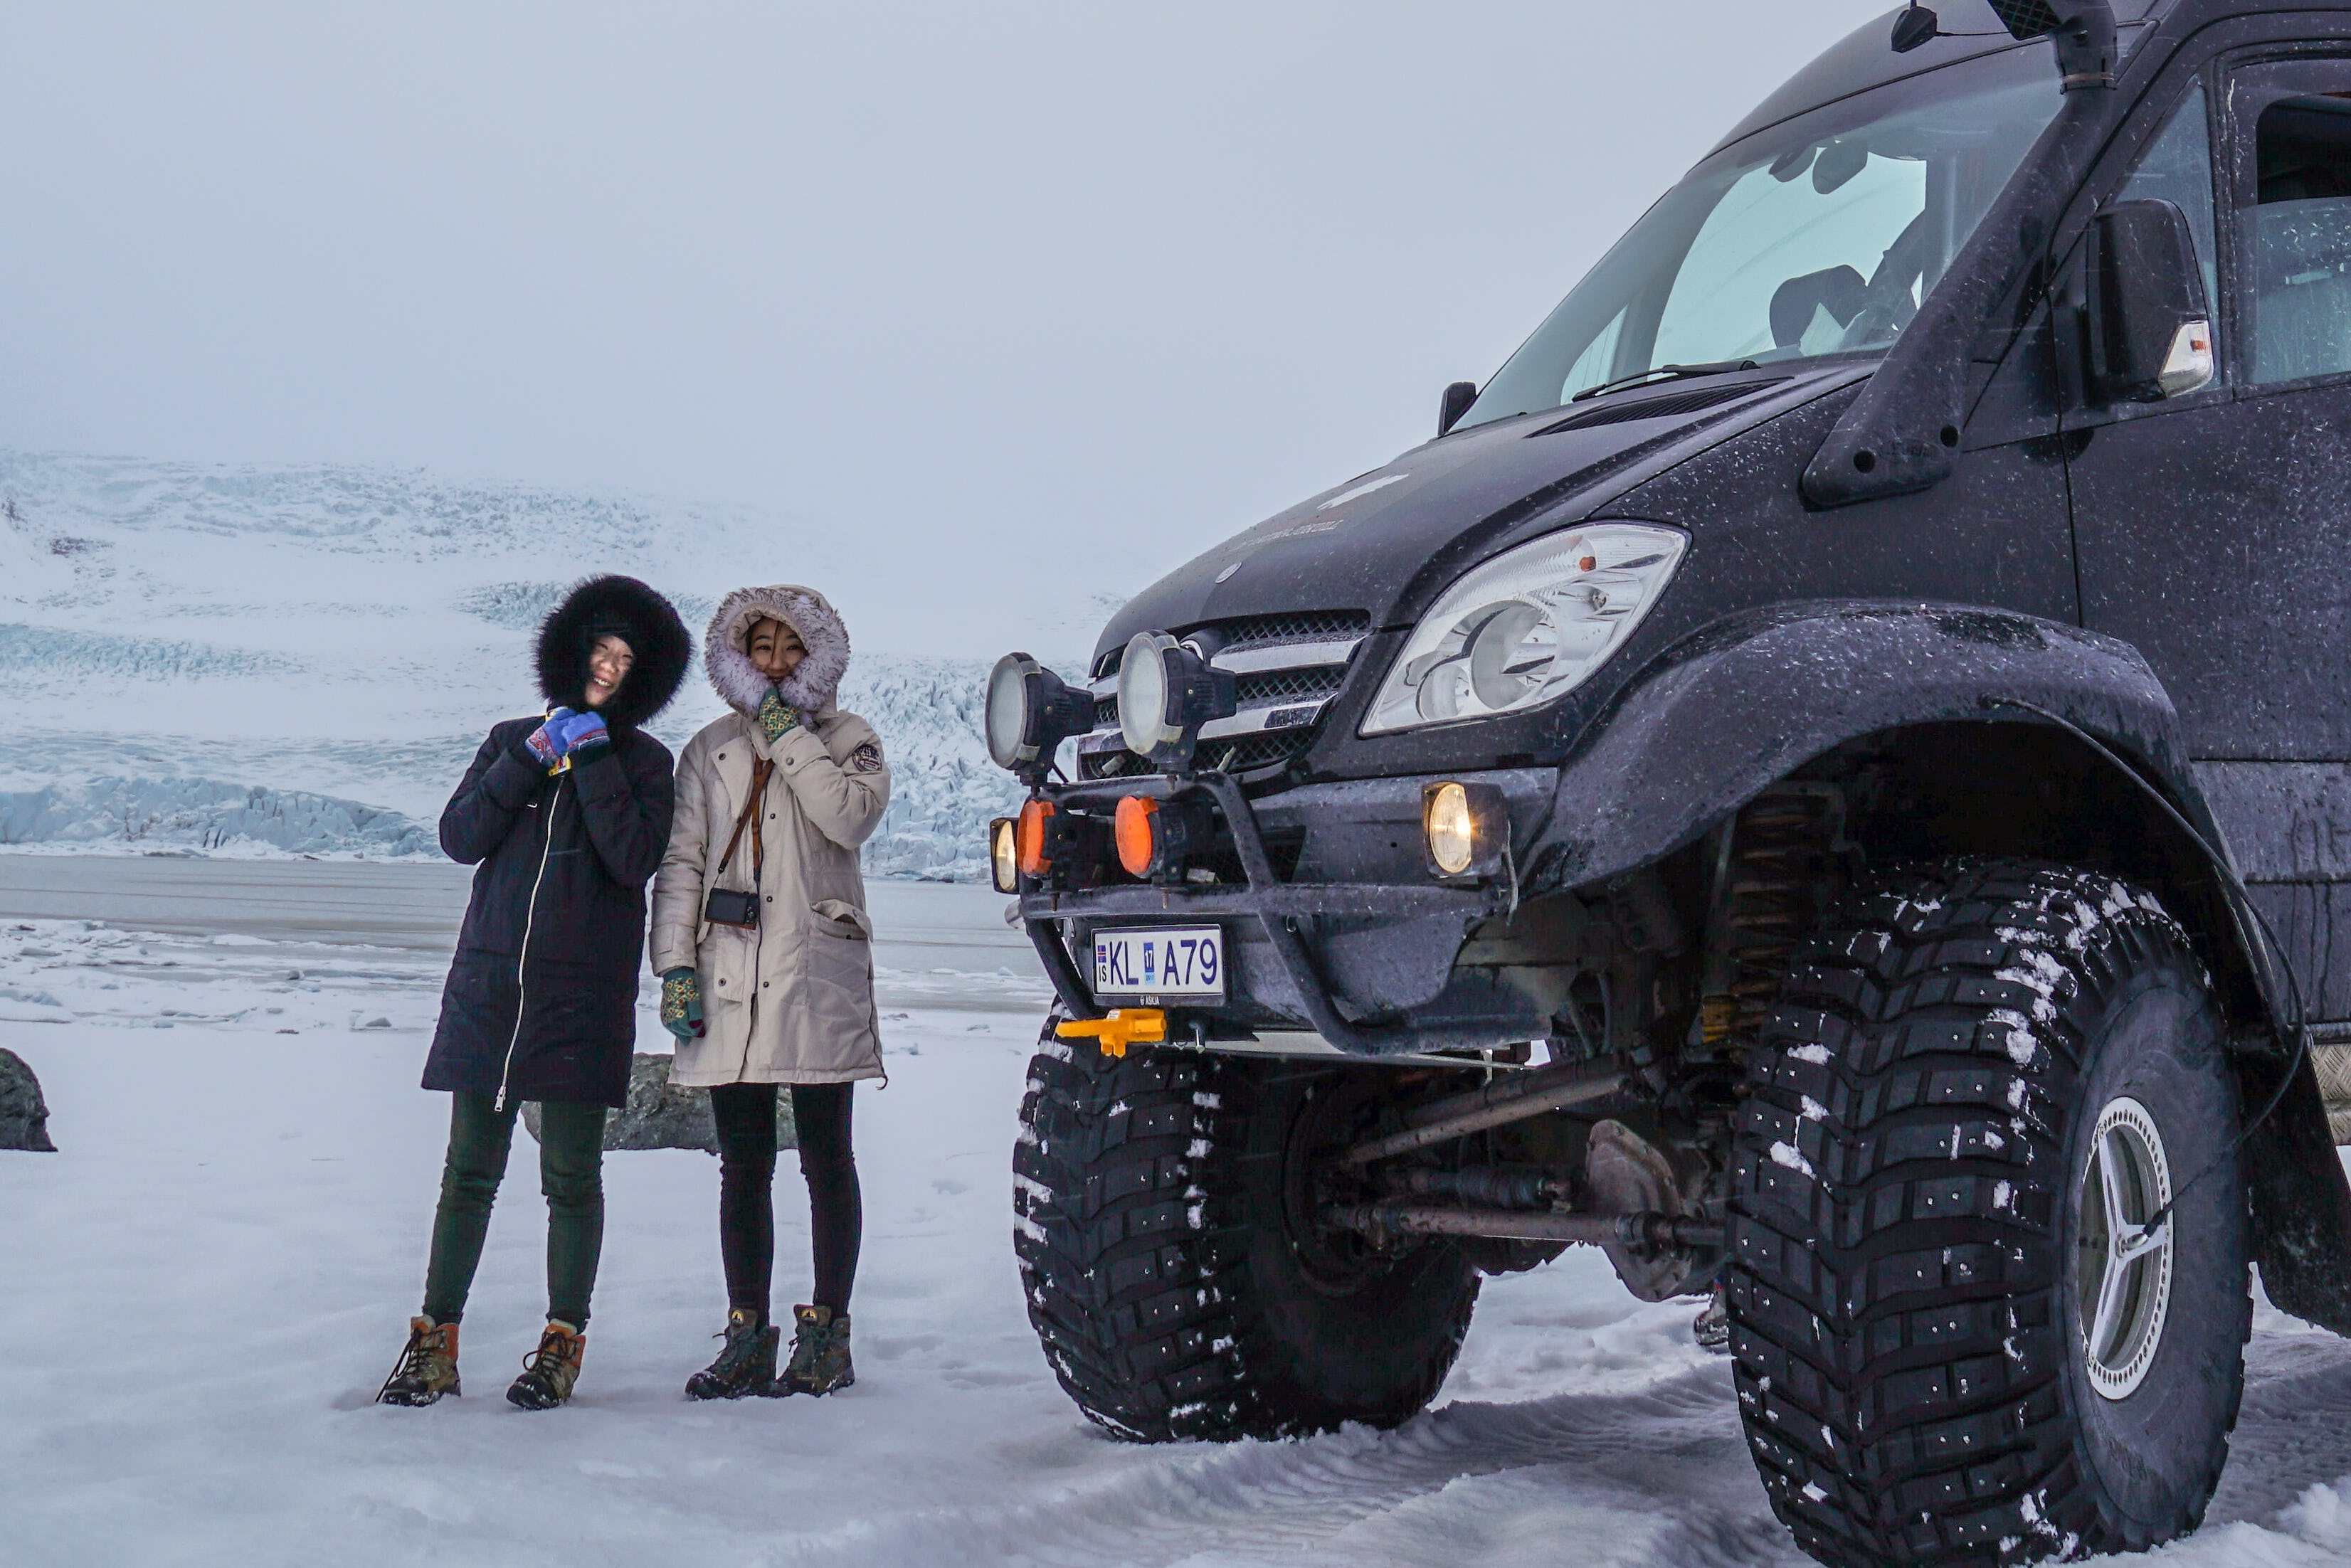 Two adventurers next to the massive superjeep used to get the ice caves high in the mountains.